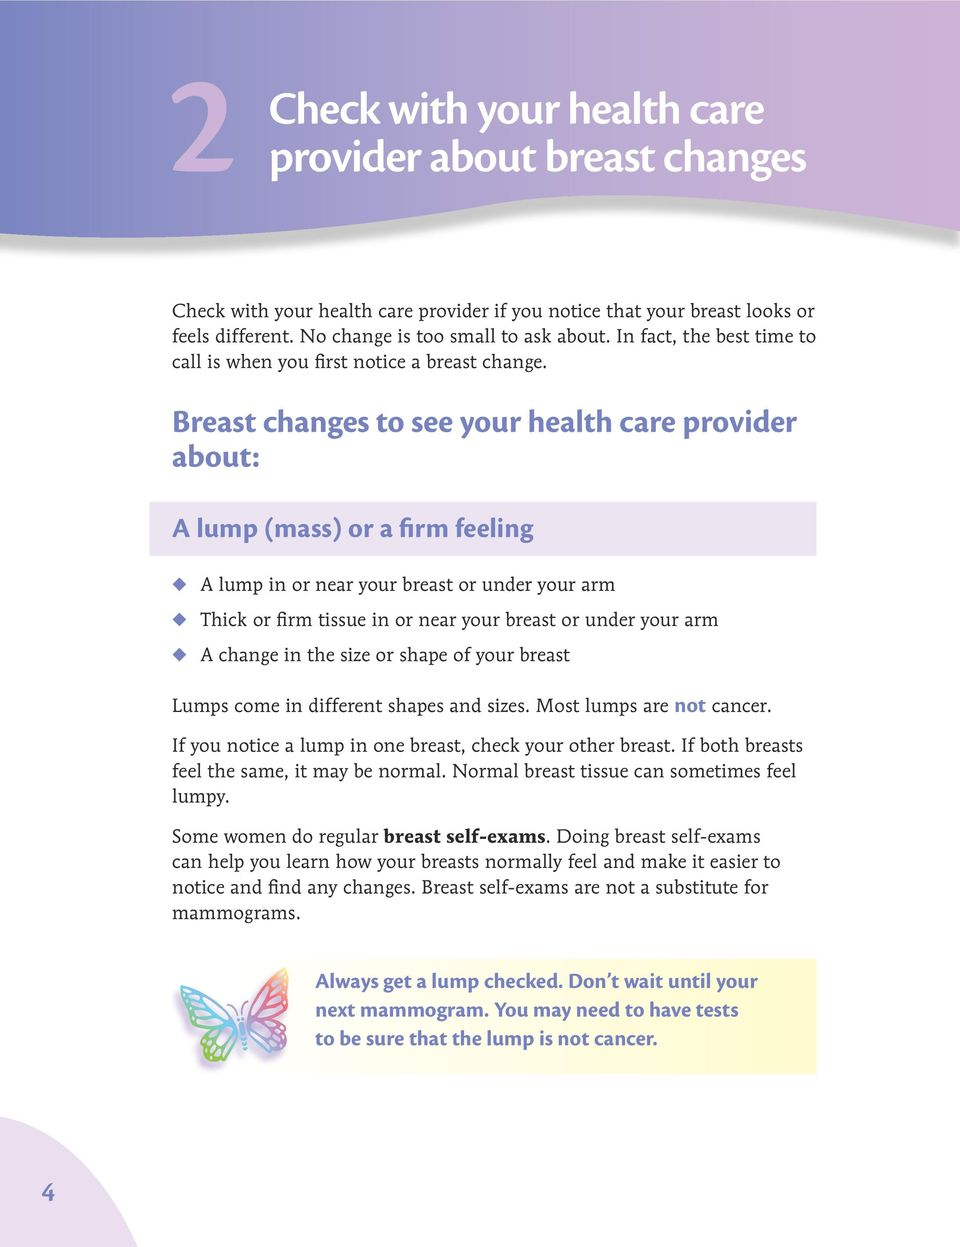 Breast changes to see your health care provider about: A lump (mass) or a firm feeling u A lump in or near your breast or under your arm u Thick or firm tissue in or near your breast or under your